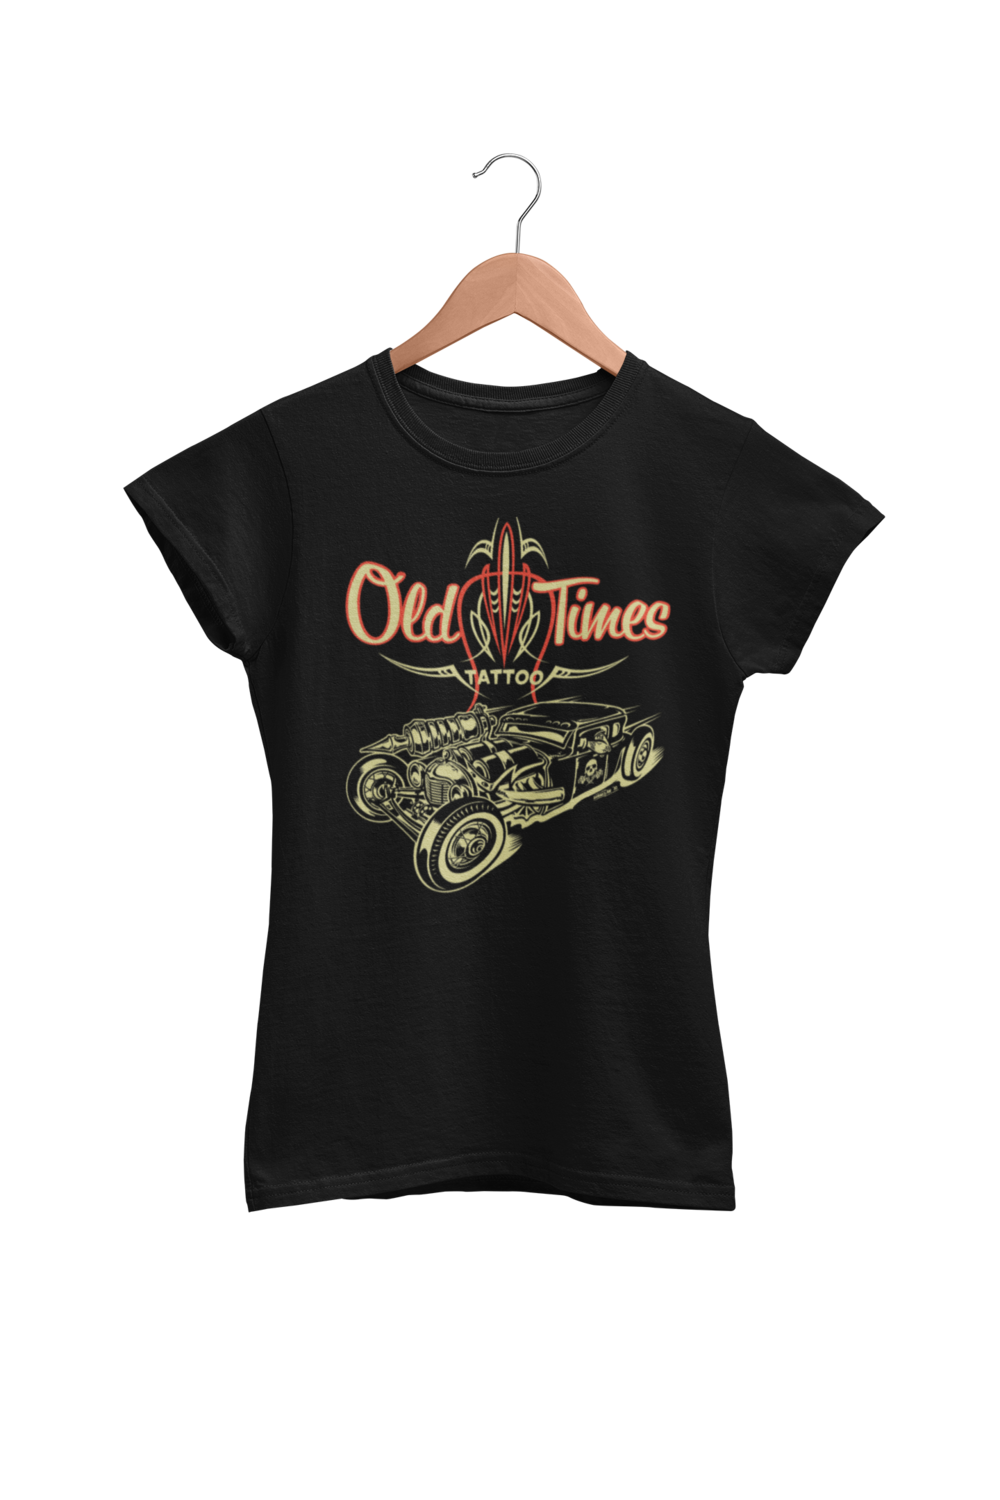 """OLD TIMES TATTOO """"Hot Rod logo"""" tshirt for WOMEN"""